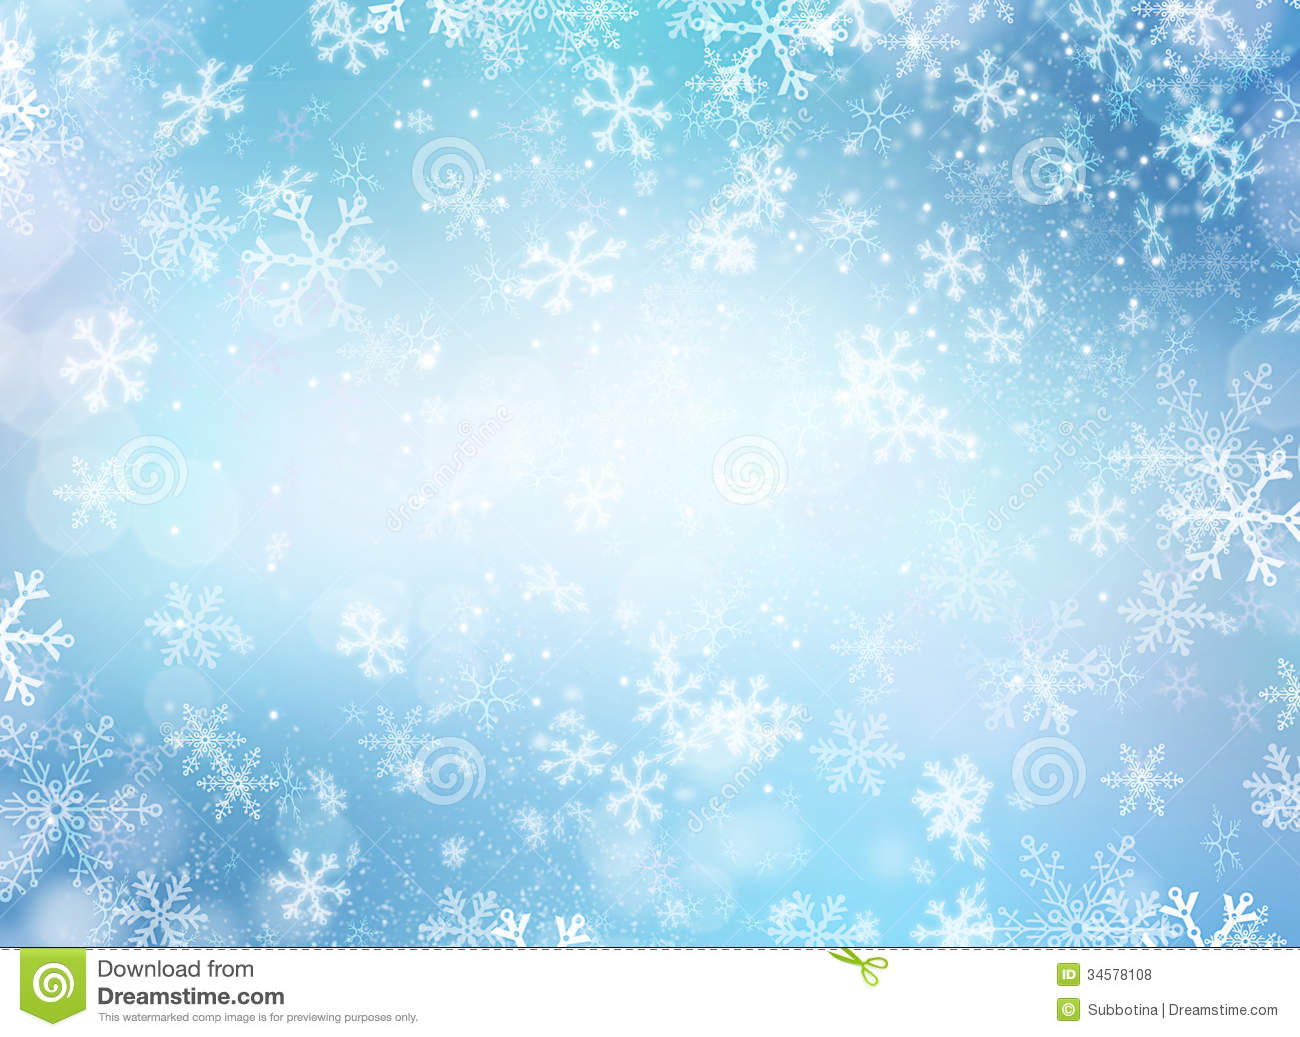 Winter Holiday Snow Background-Winter Holiday Snow Background-15